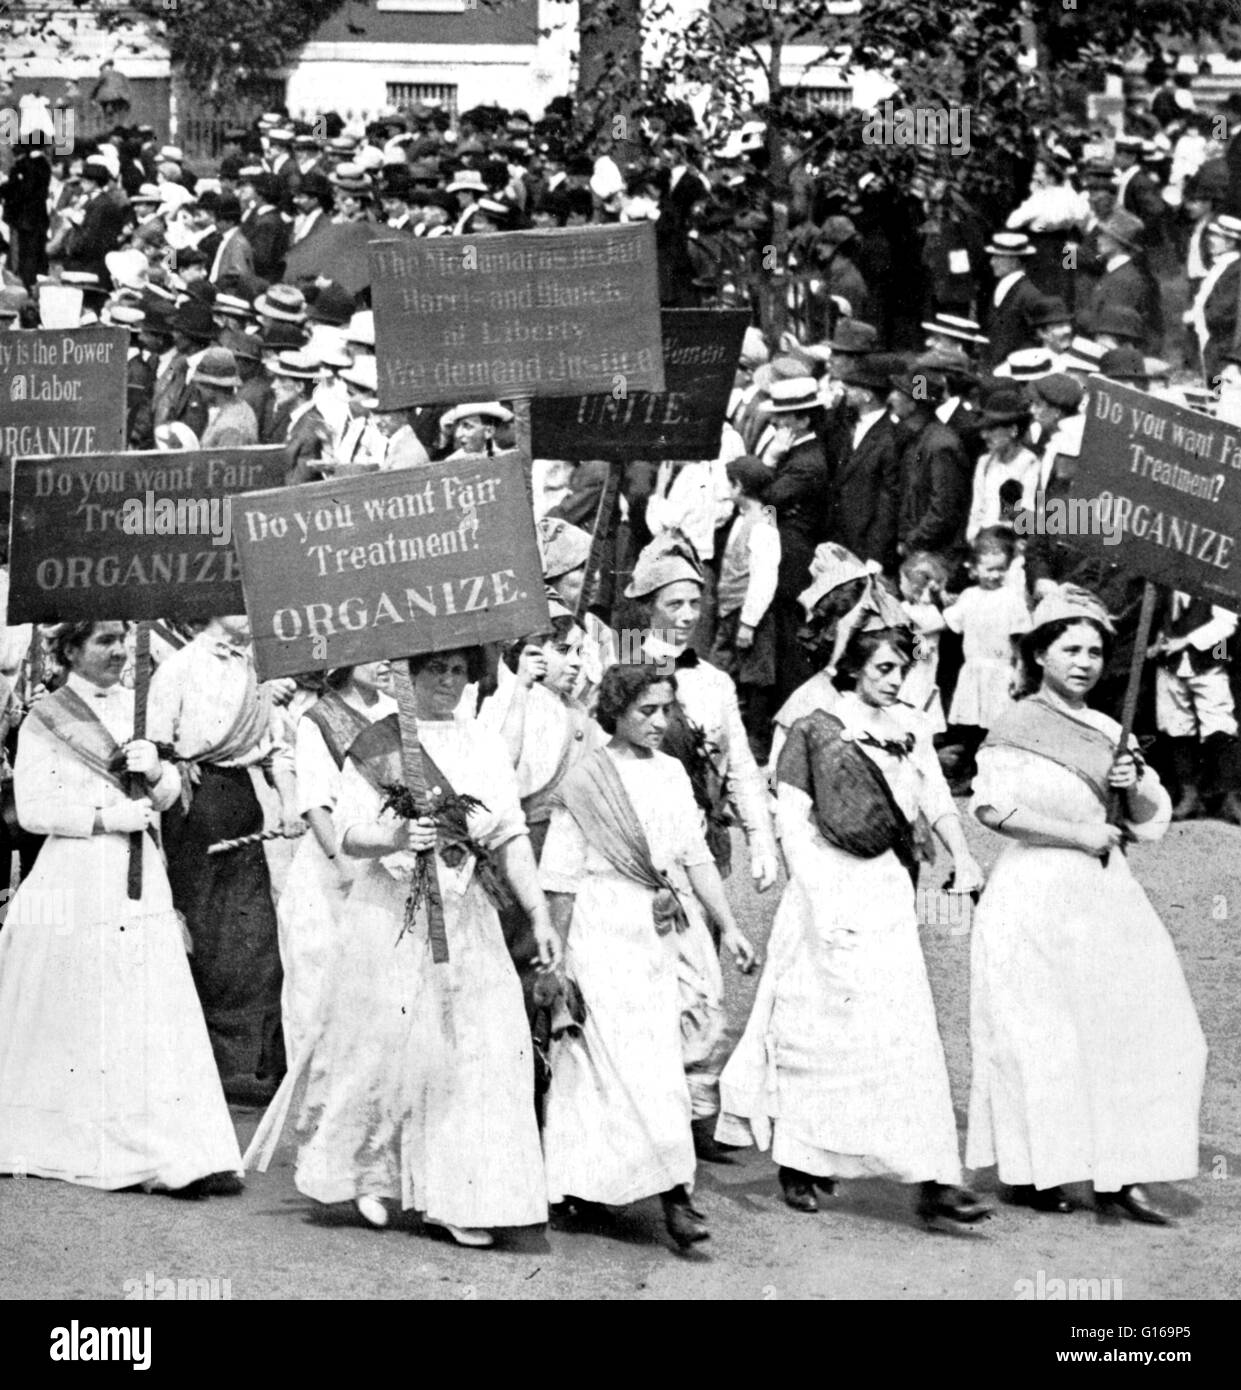 """Women's suffrage is the right of women to vote and to run for office. By the end of the 19th century, Idaho, Colorado, Utah, and Wyoming had enfranchised women after effort by the suffrage associations at the state level. During the beginning of the 20th century, as women's suffrage faced several important federal votes, a portion of the suffrage movement known as the National Women's Party led by suffragist Alice Paul became the first """"cause"""" to picket outside the White House. After years of opposition, Wilson changed his position in 1918 to advocate women's suffrage as a war measure. The key Stock Photo"""